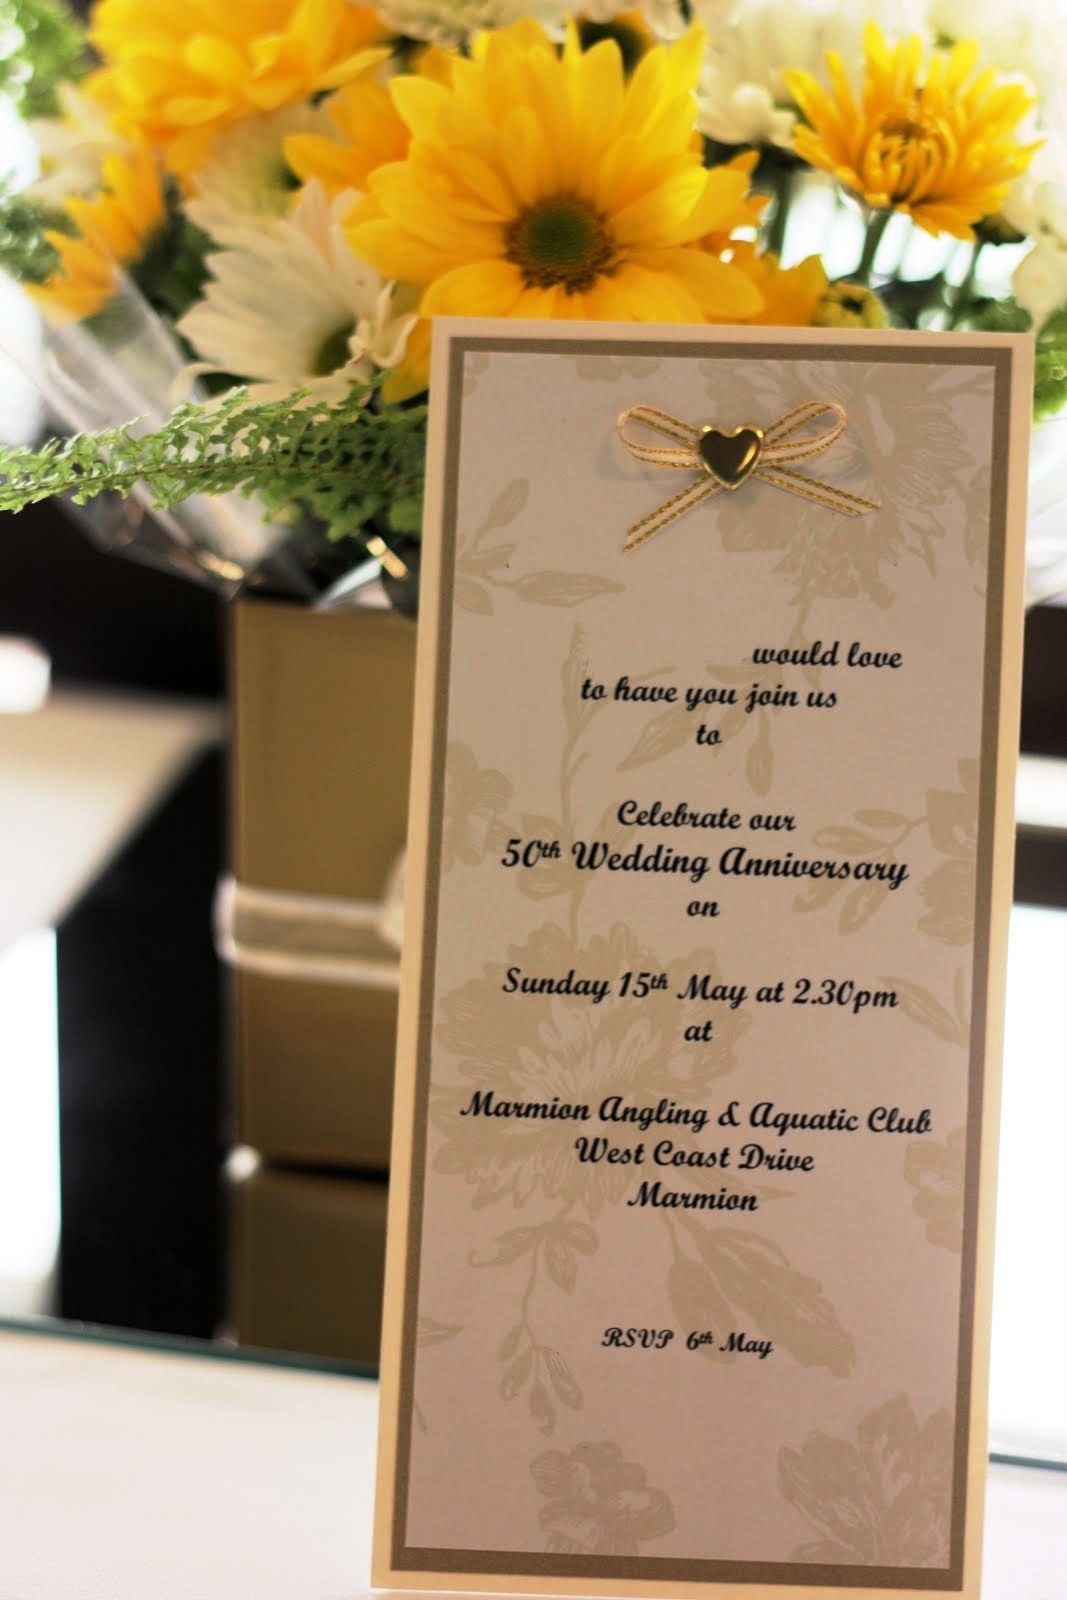 Decoration ideas for 50th wedding anniversary celebration  Stunning with Gold of th Wedding Anniversary Decorations